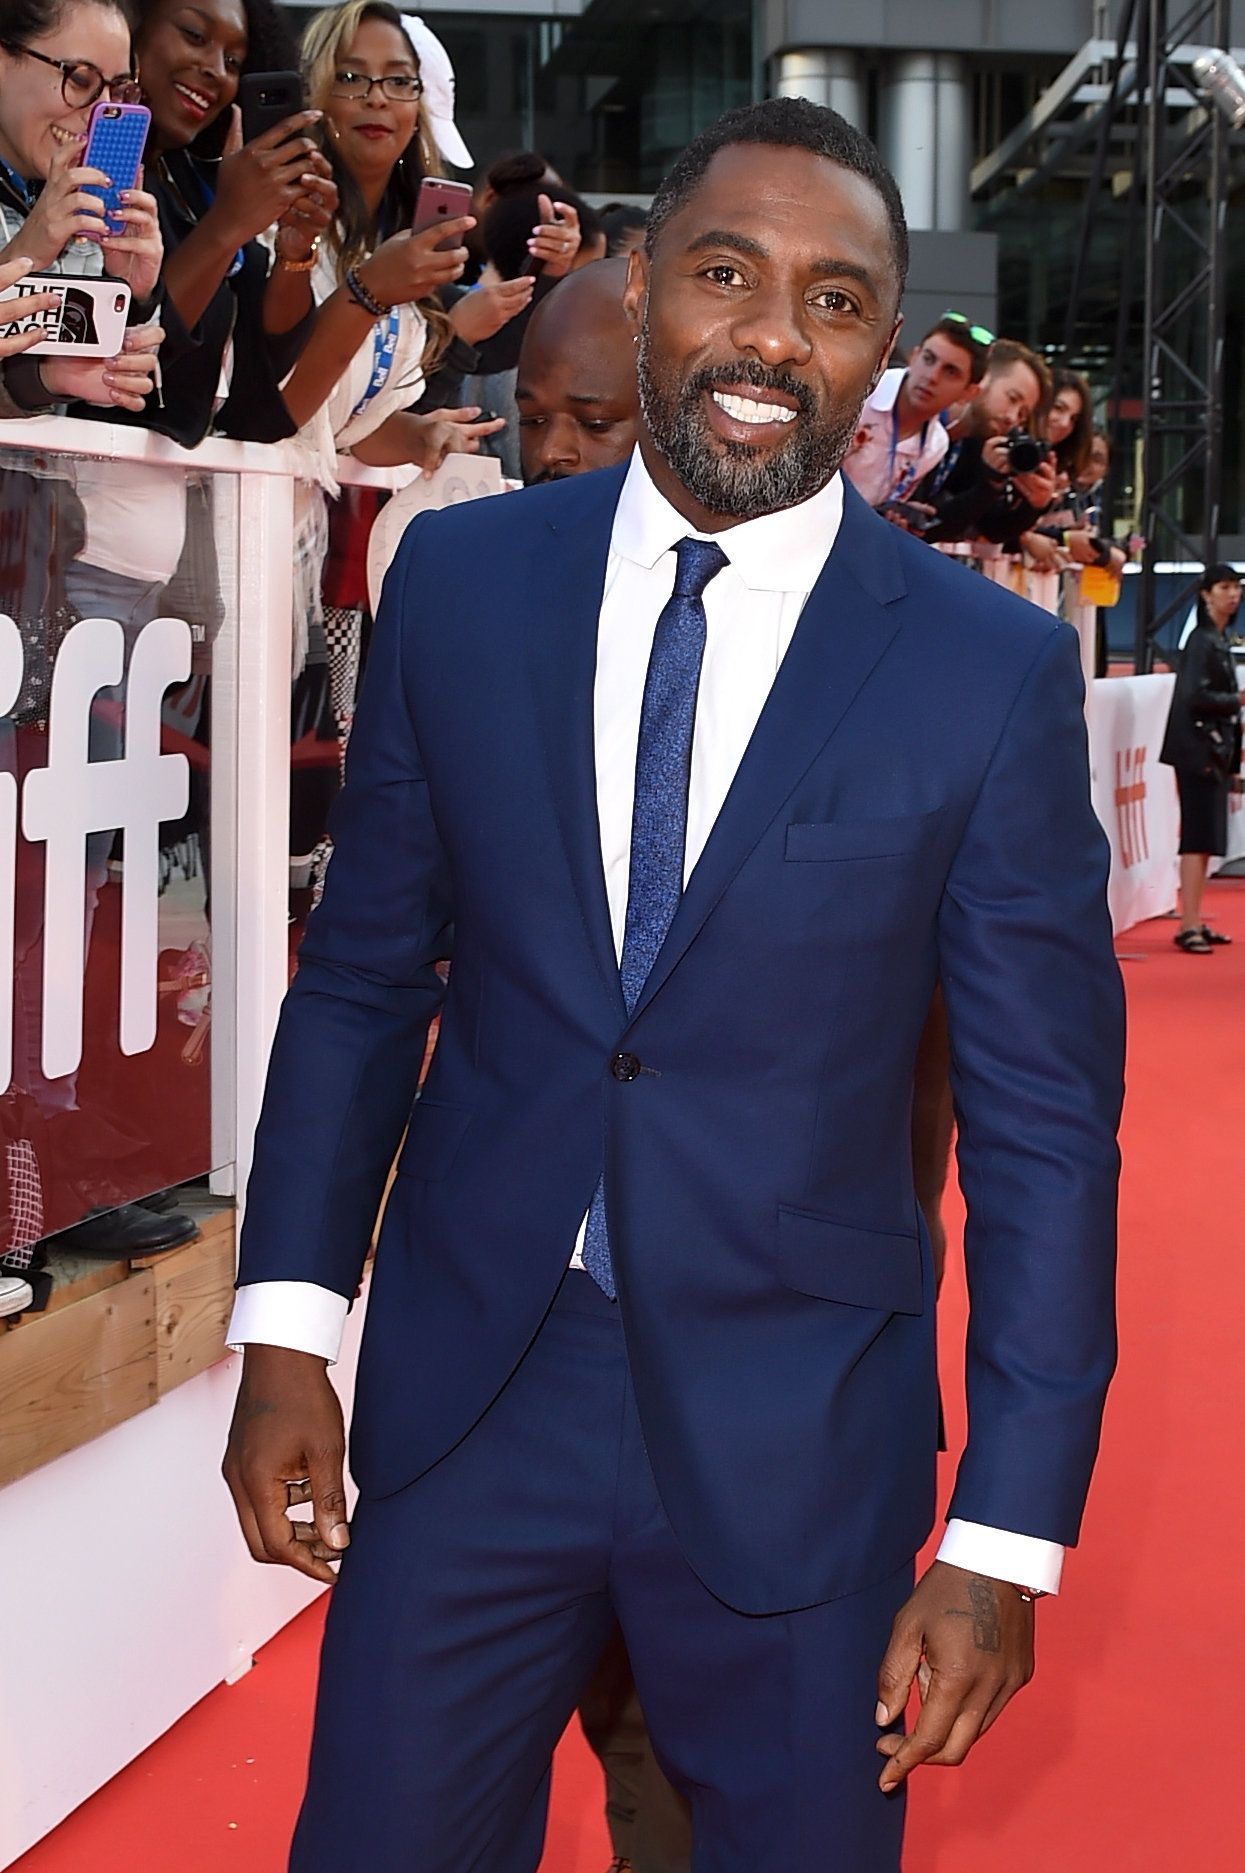 Idris Elba Admits His 'James Bond' Hopes Have Been Somewhat Dashed